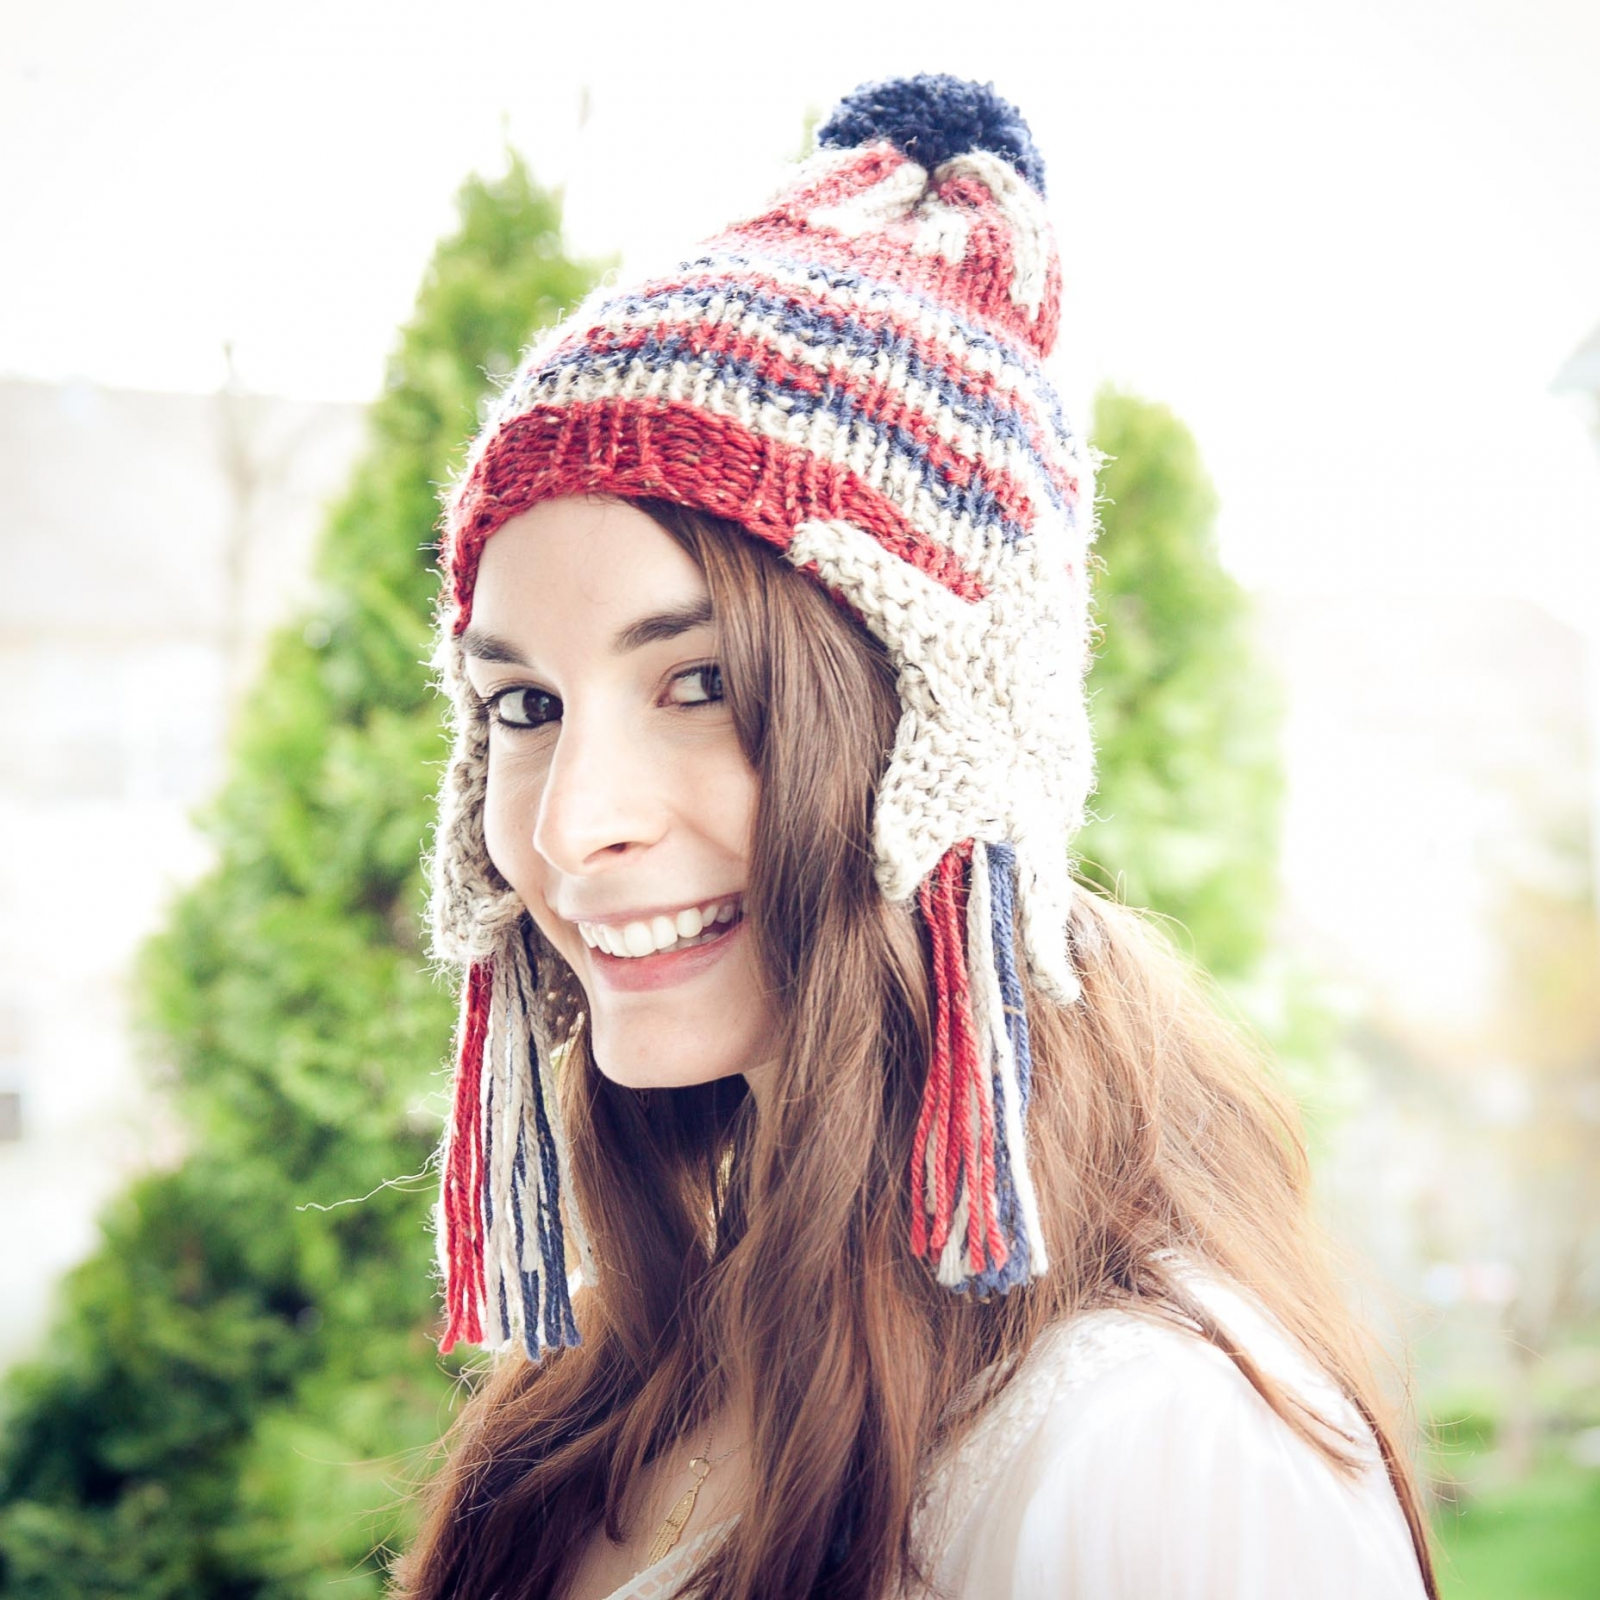 Loom Knit Patriotic Earflap Hat Pattern | This Moment is Good